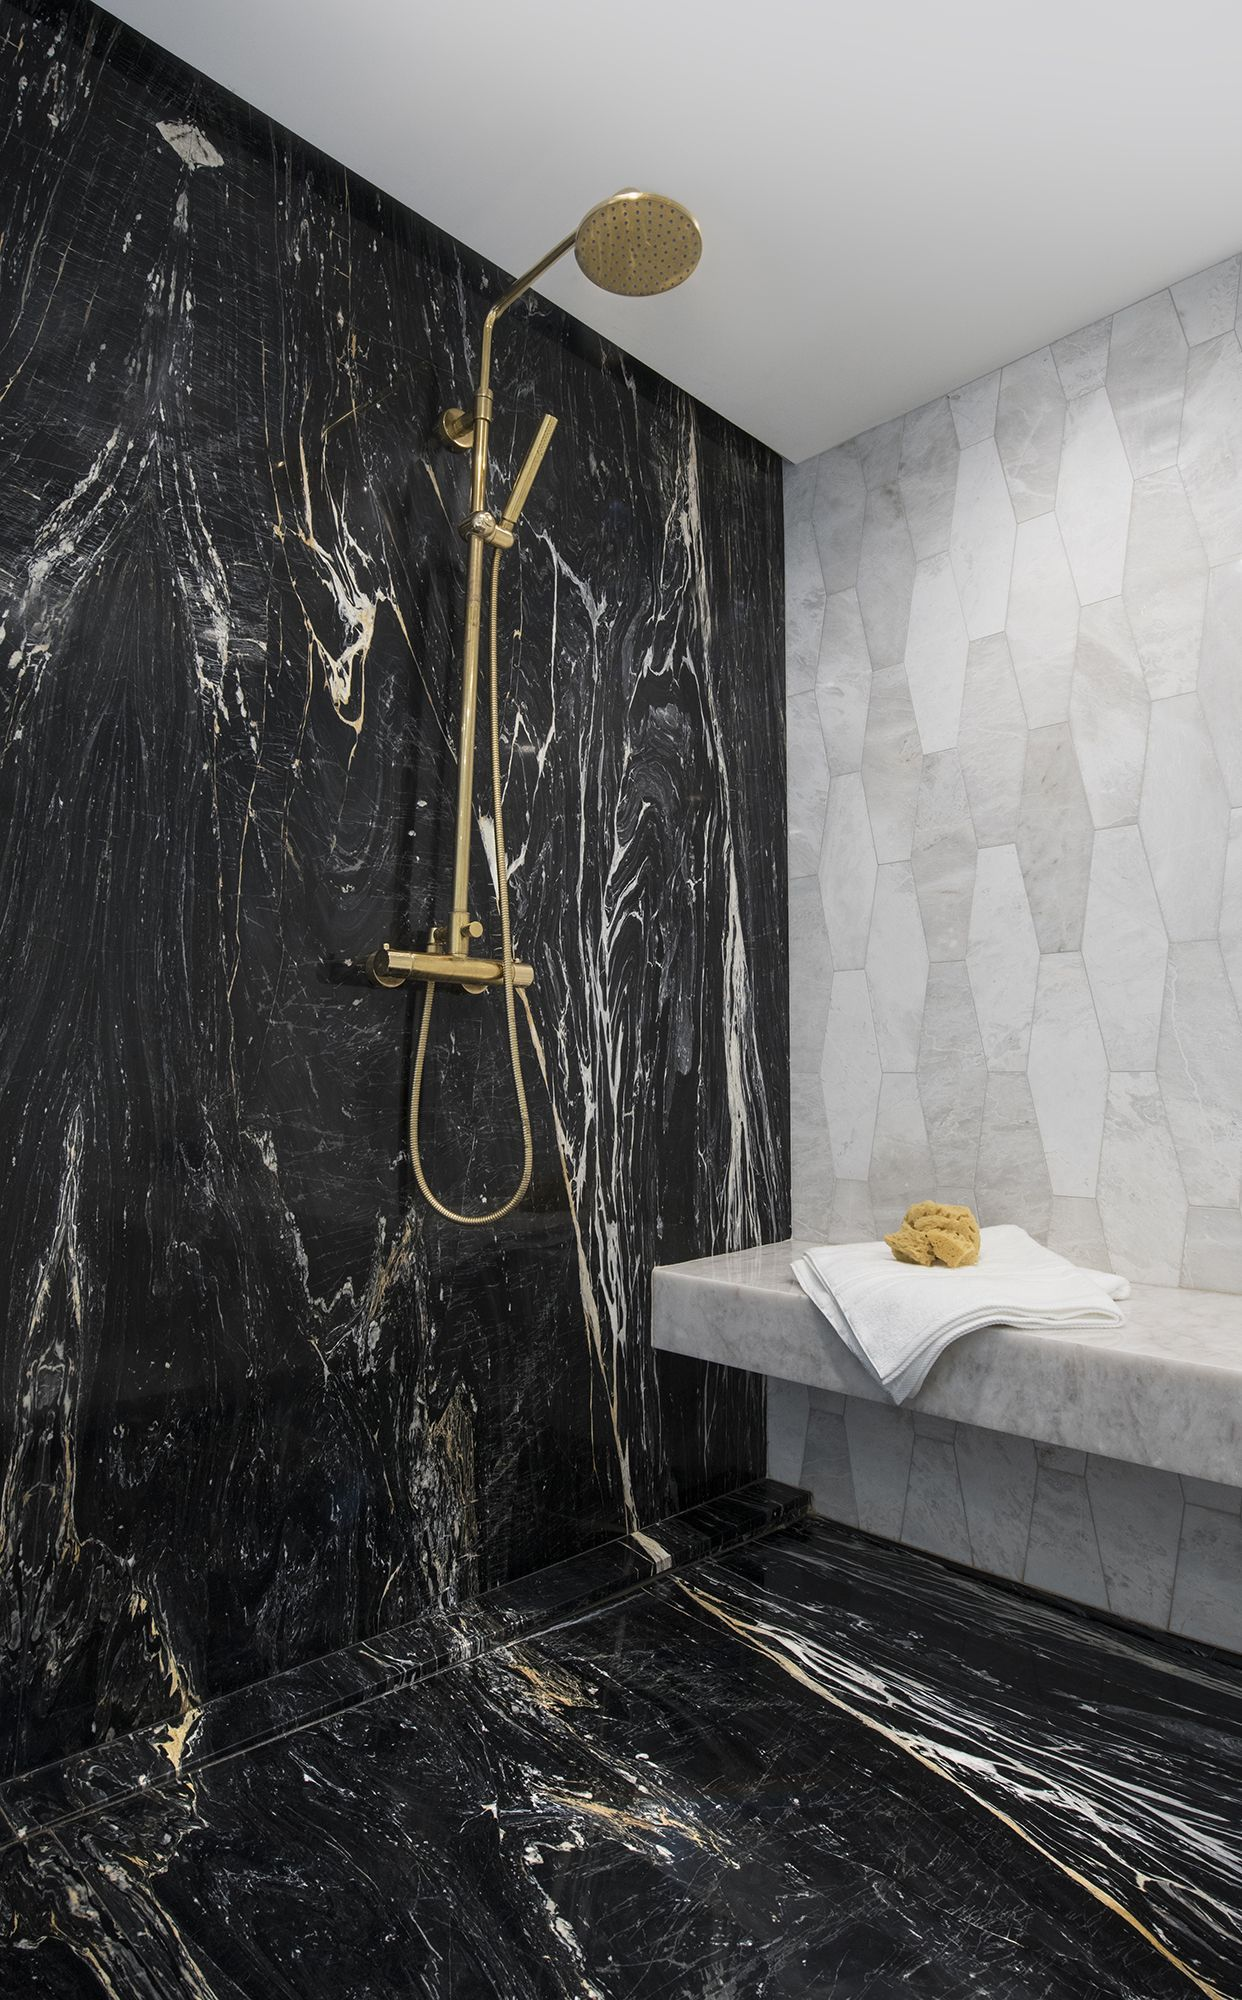 The Zebrino Black Marble Combined With Silver White Marble Tiles Brings Elegance And Luxury Bathroom Design Black Black Marble Bathroom White Marble Bathrooms